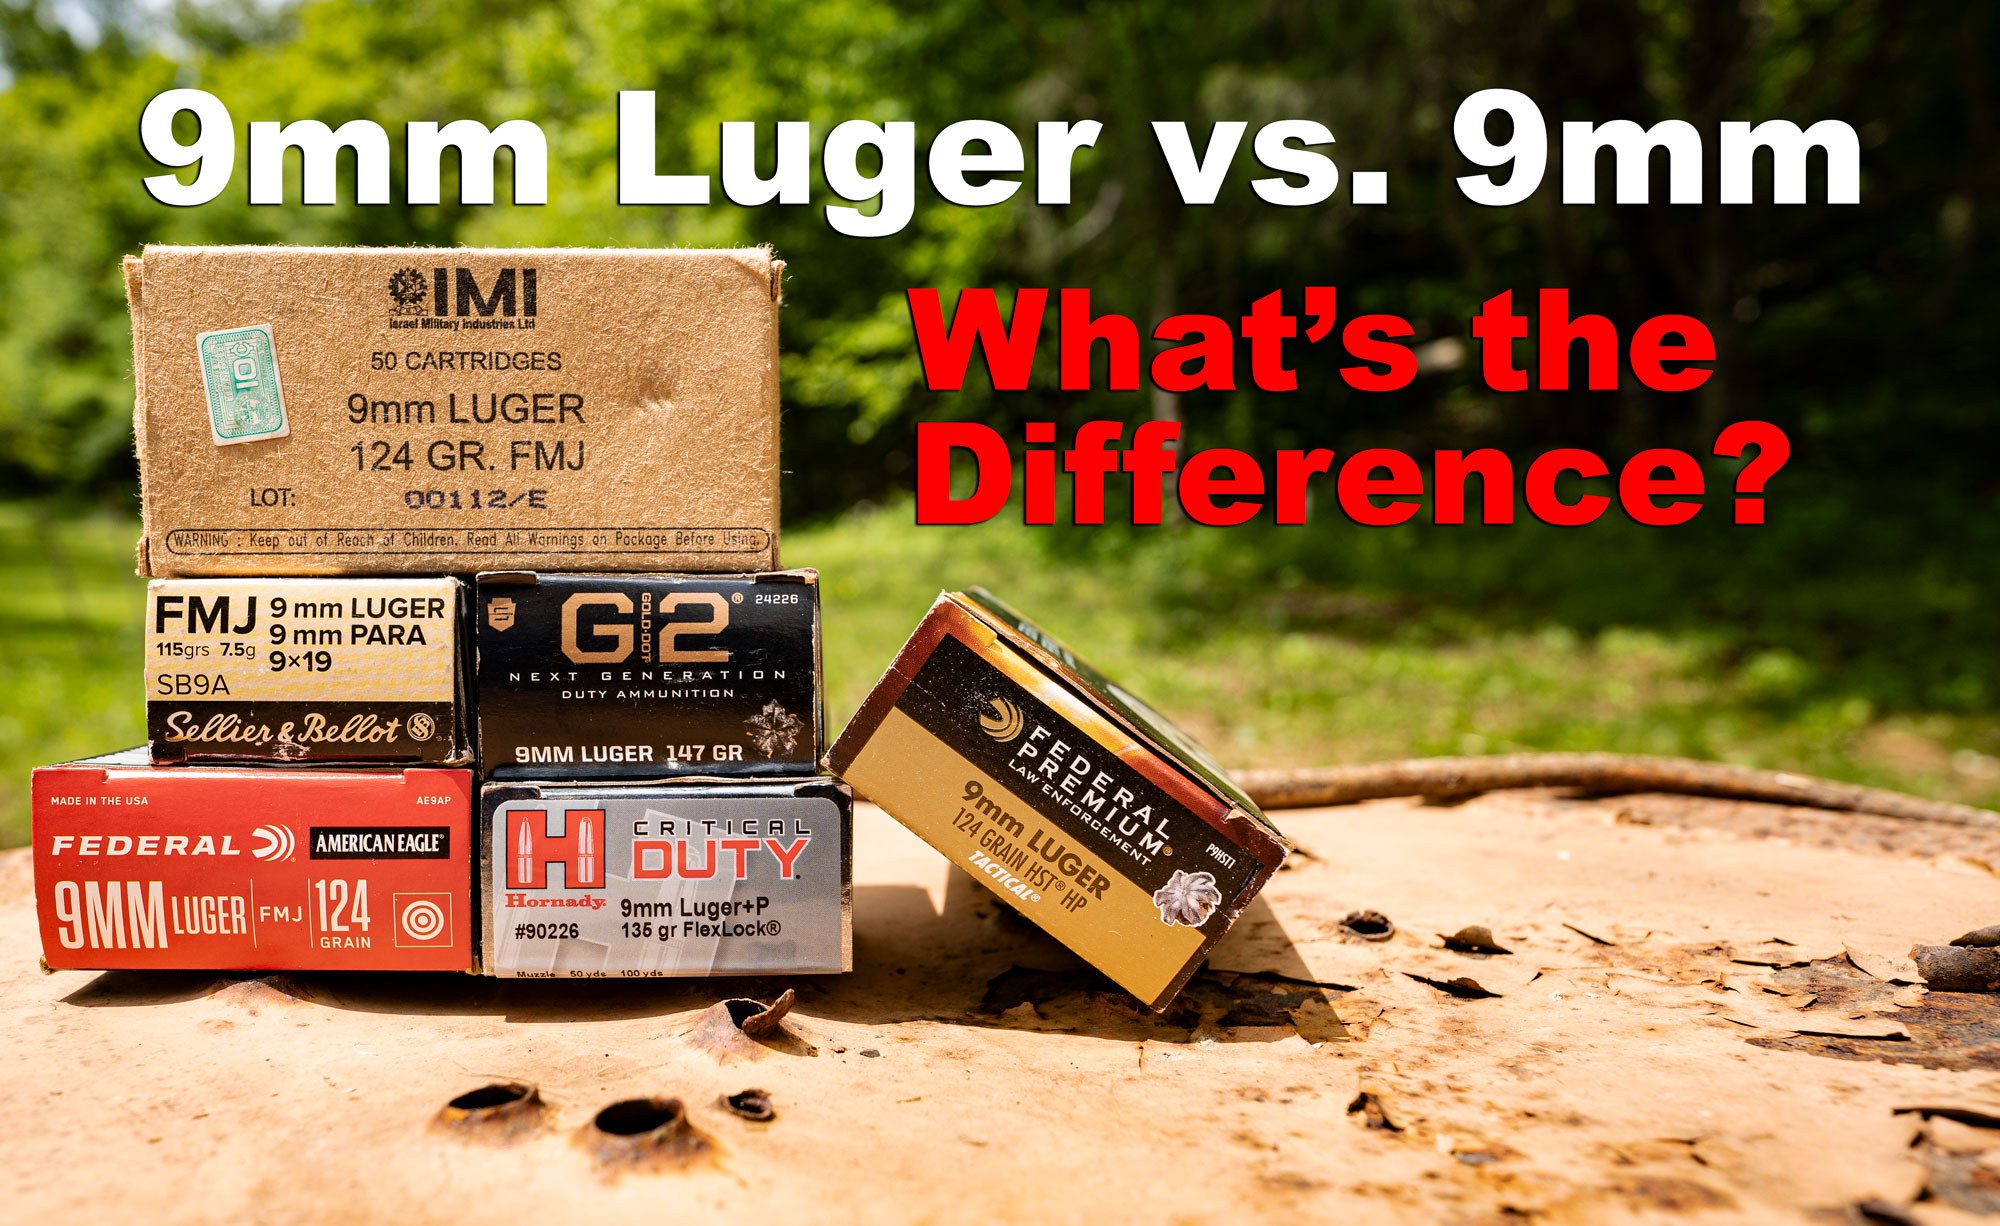 9mm vs 9mm Luger ammo boxes on a table at the shooting range